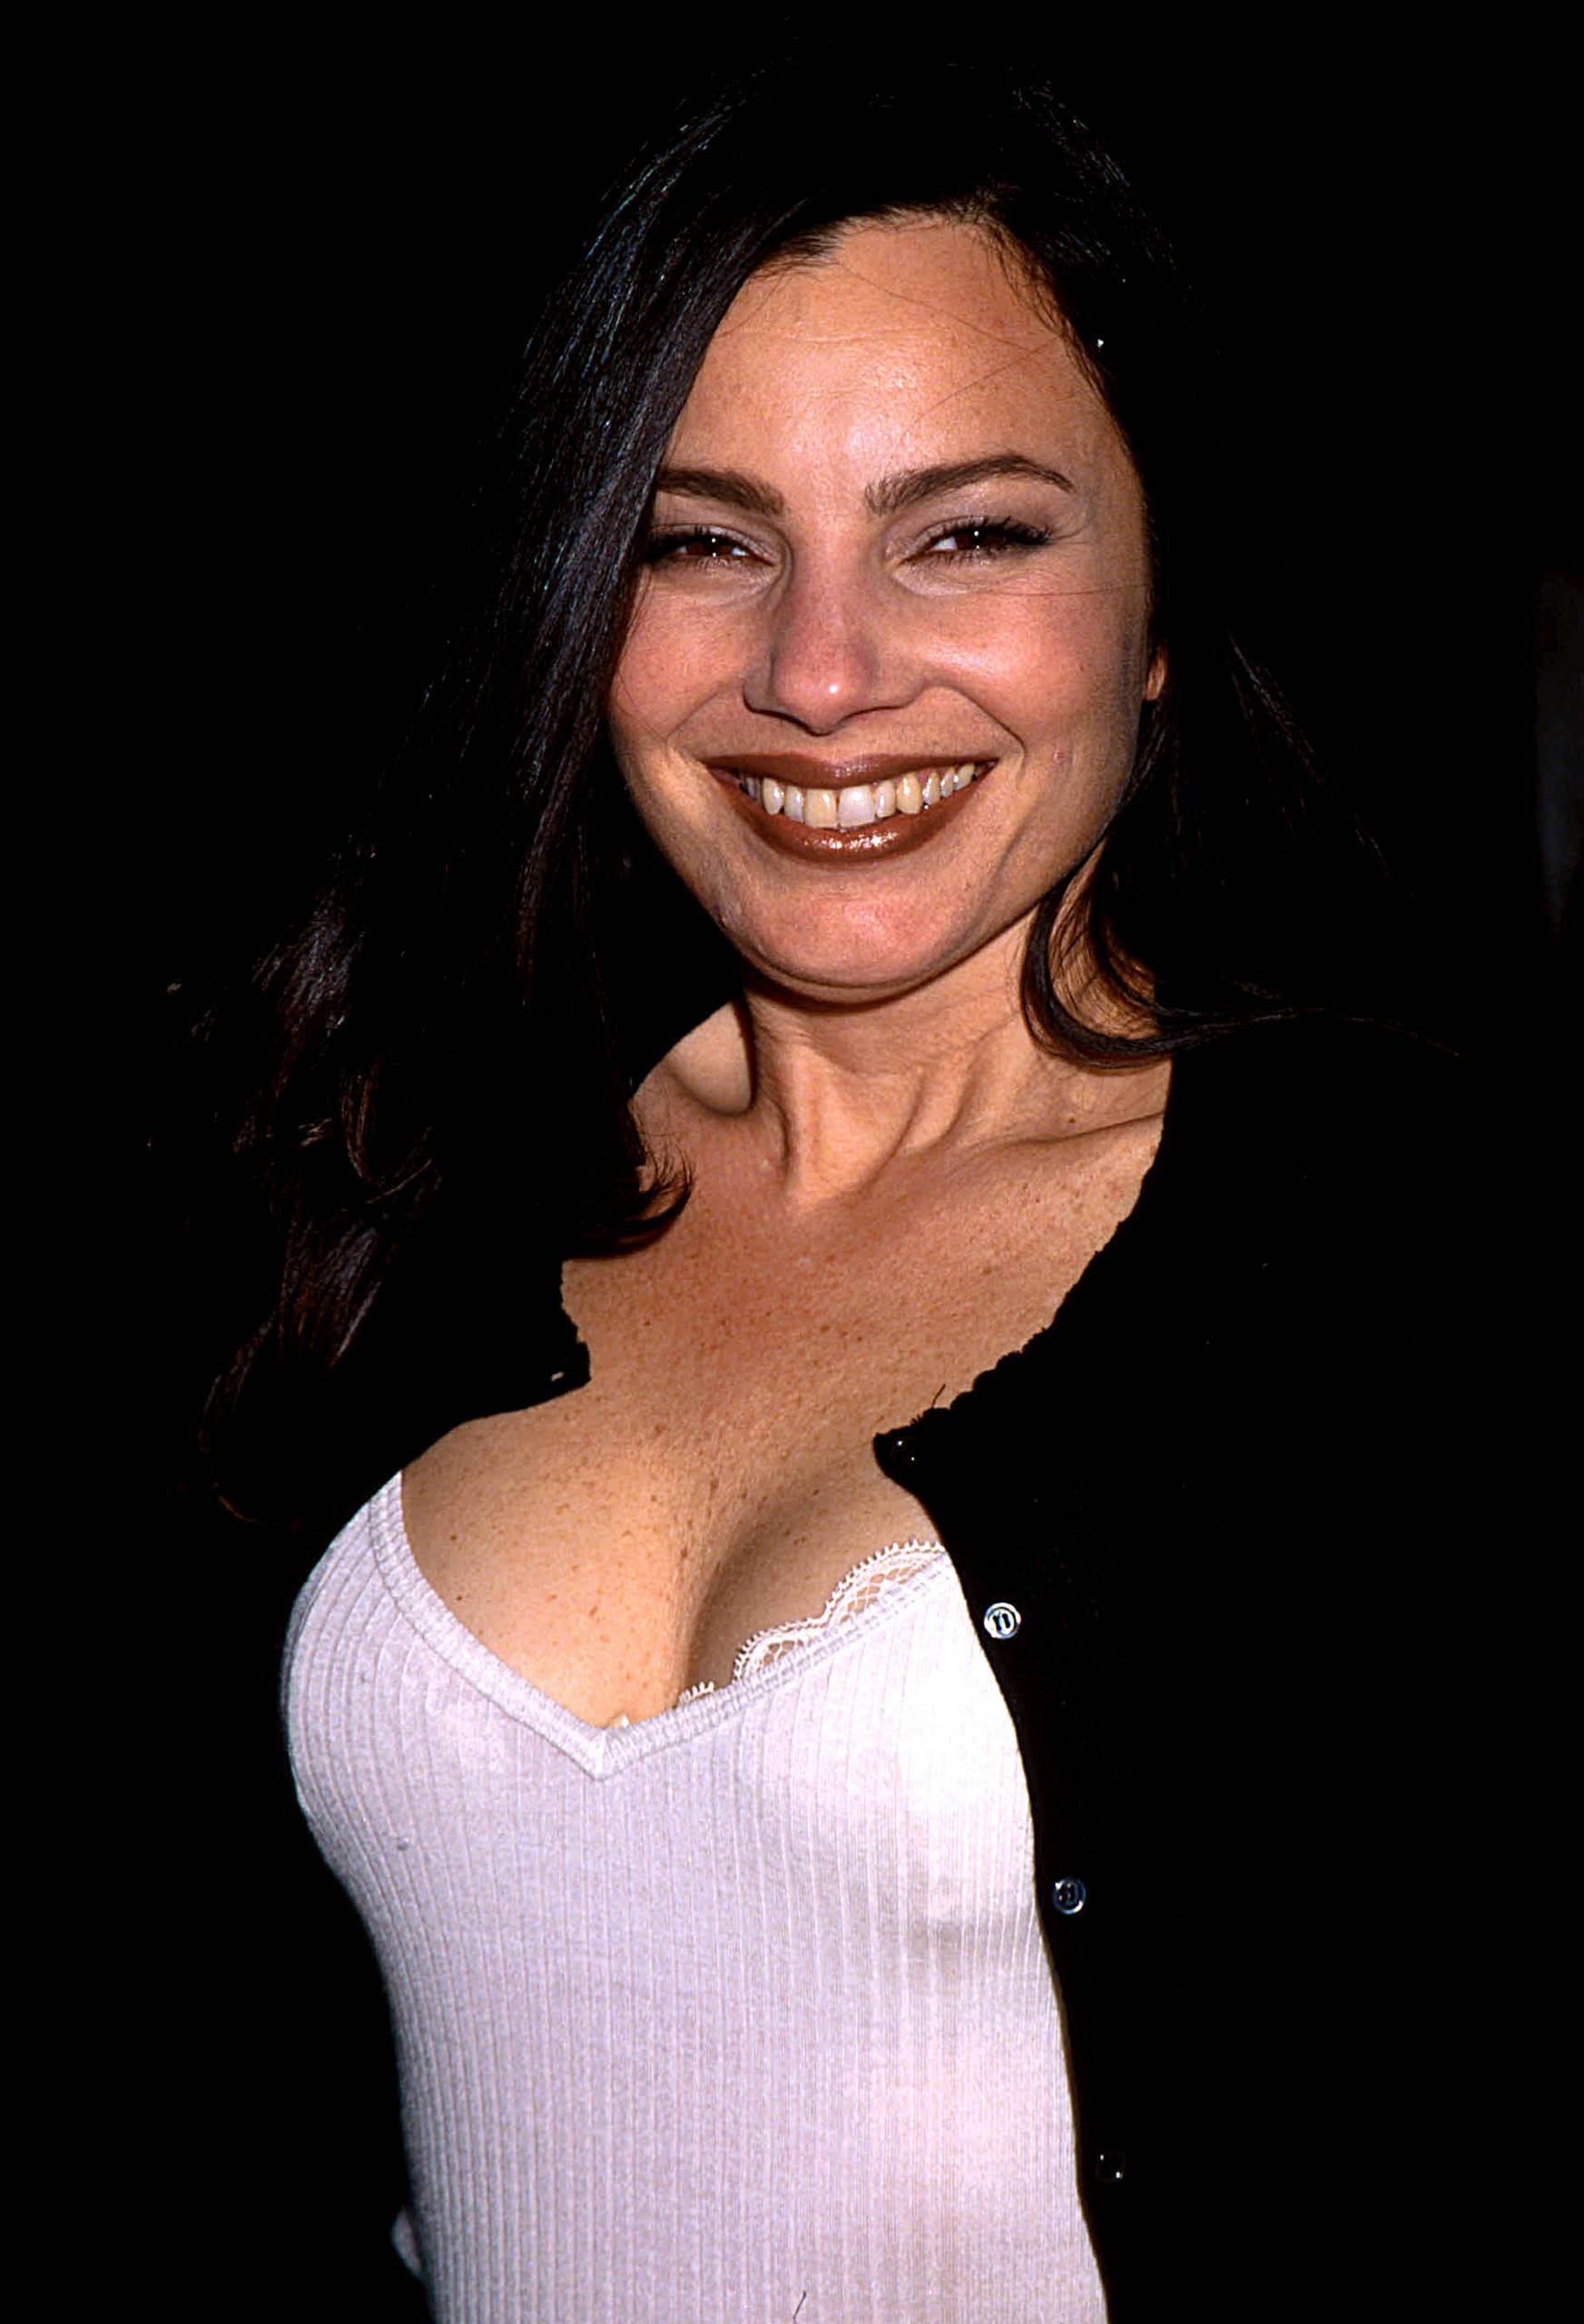 Fran Drescher Hot Photos - YouTube